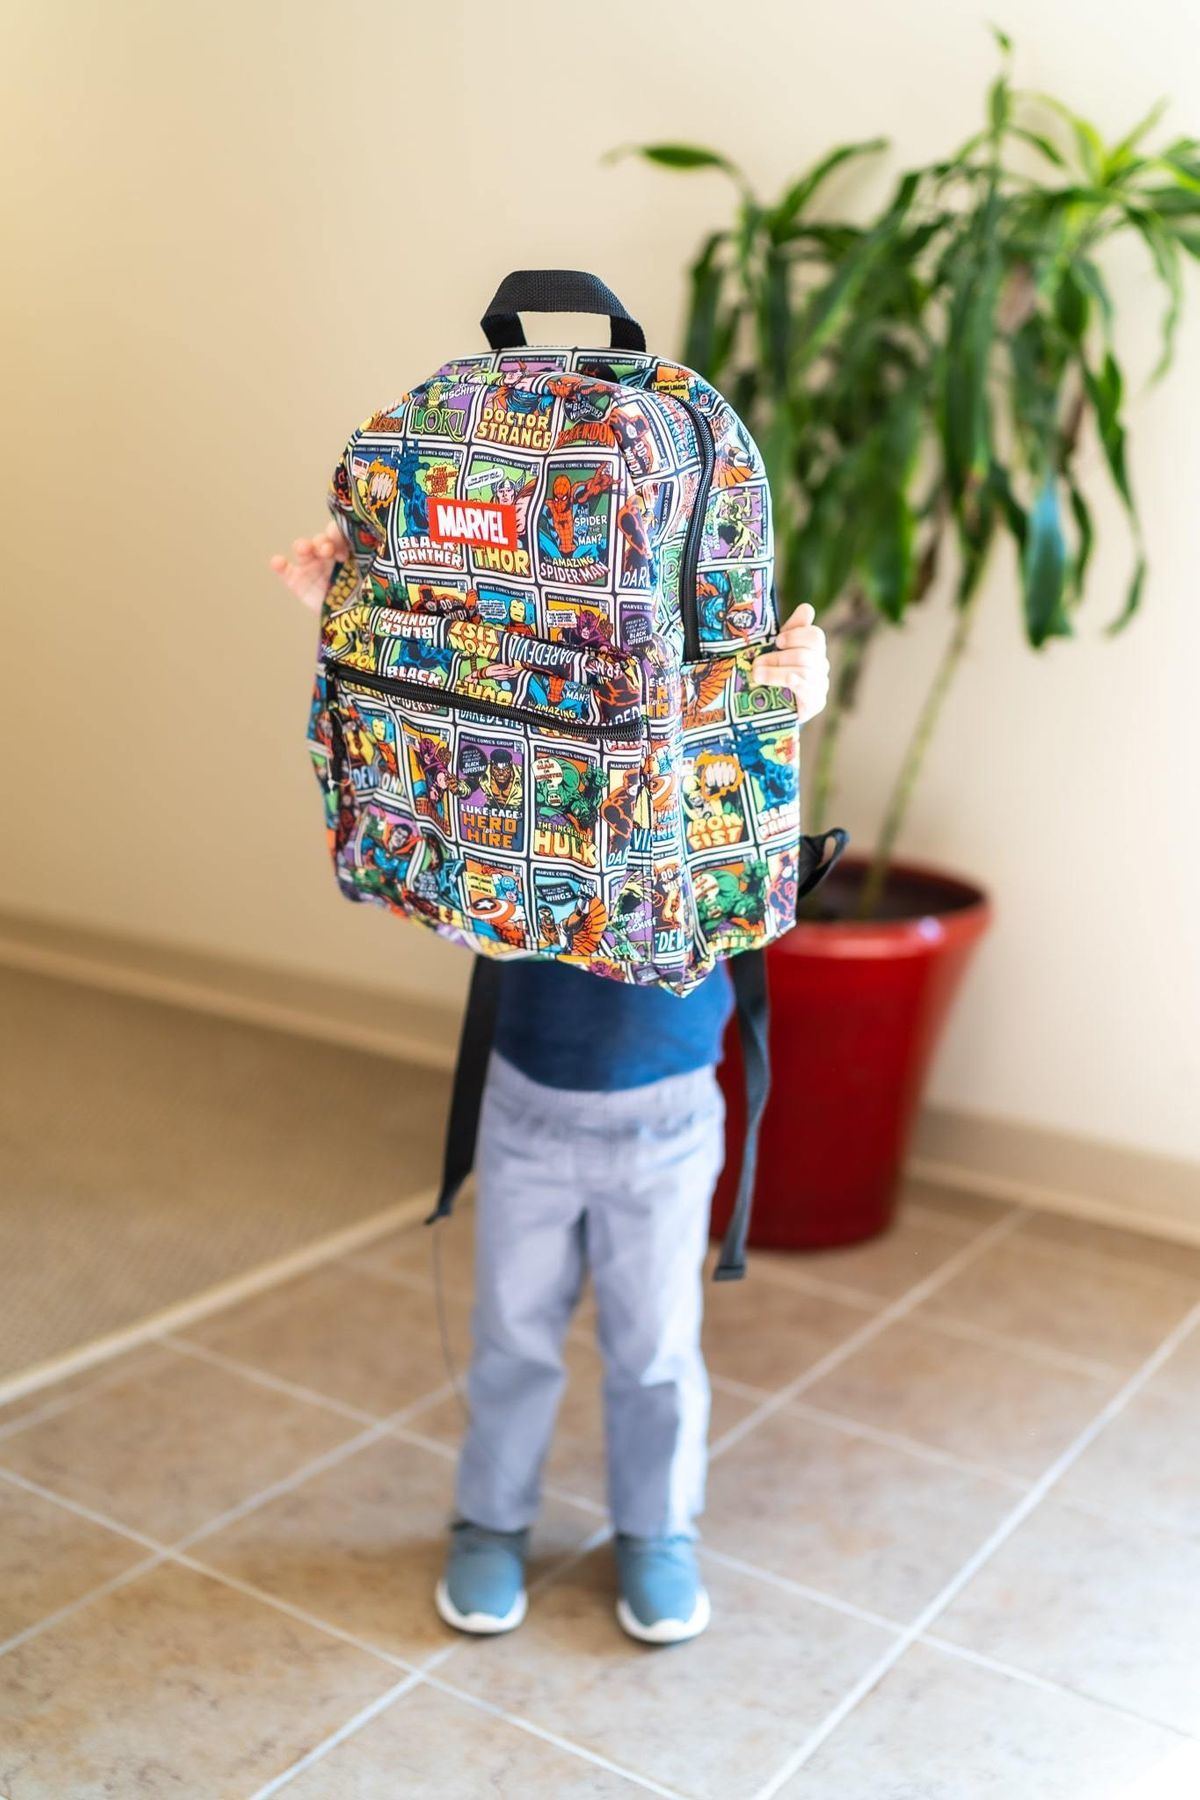 Kid with backpack.